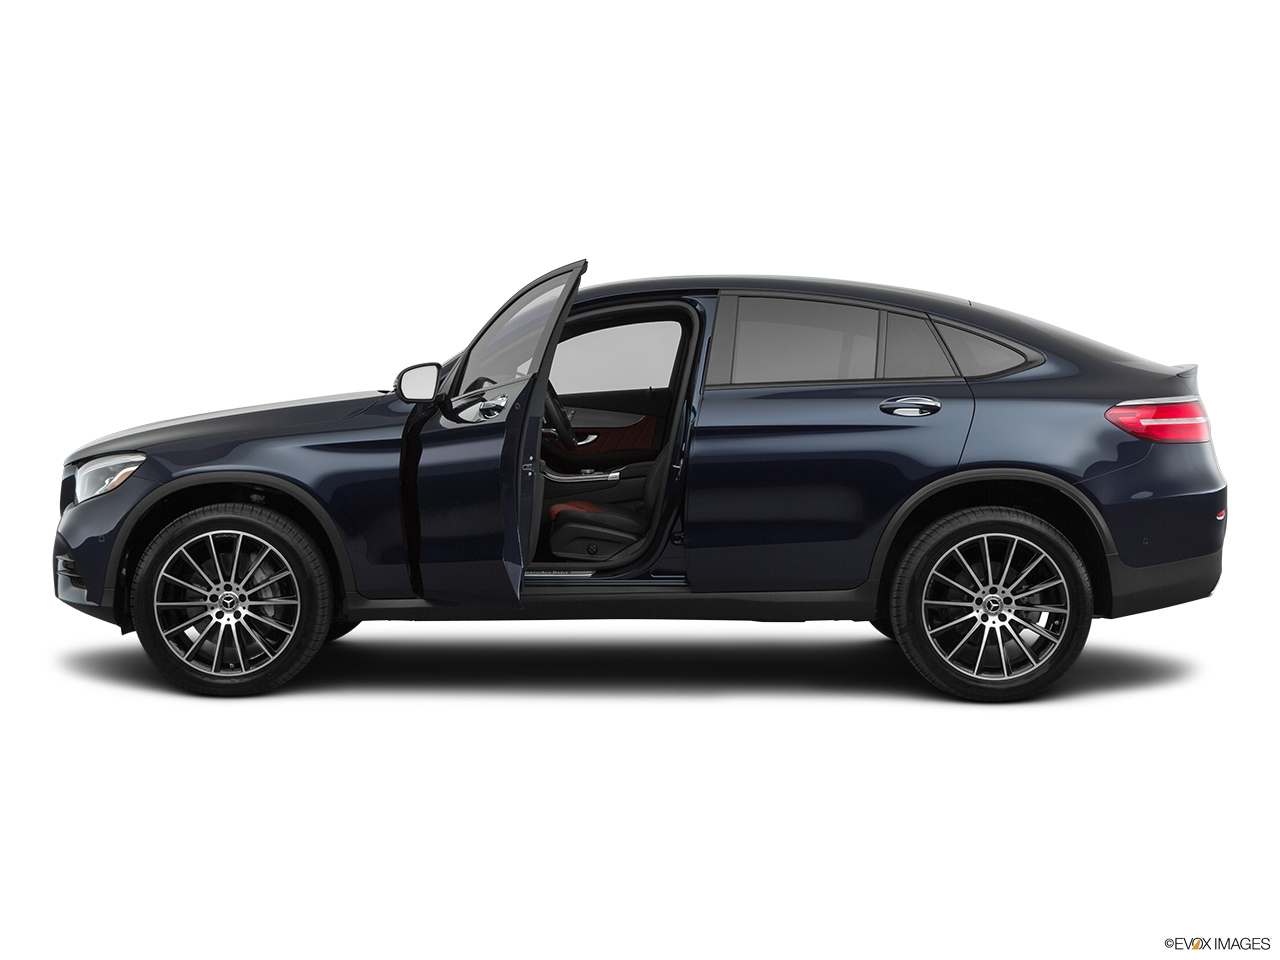 2019 Mercedes-Benz GLC-Class Coupe GLC 300 4MATIC Driver's side profile with drivers side door open.